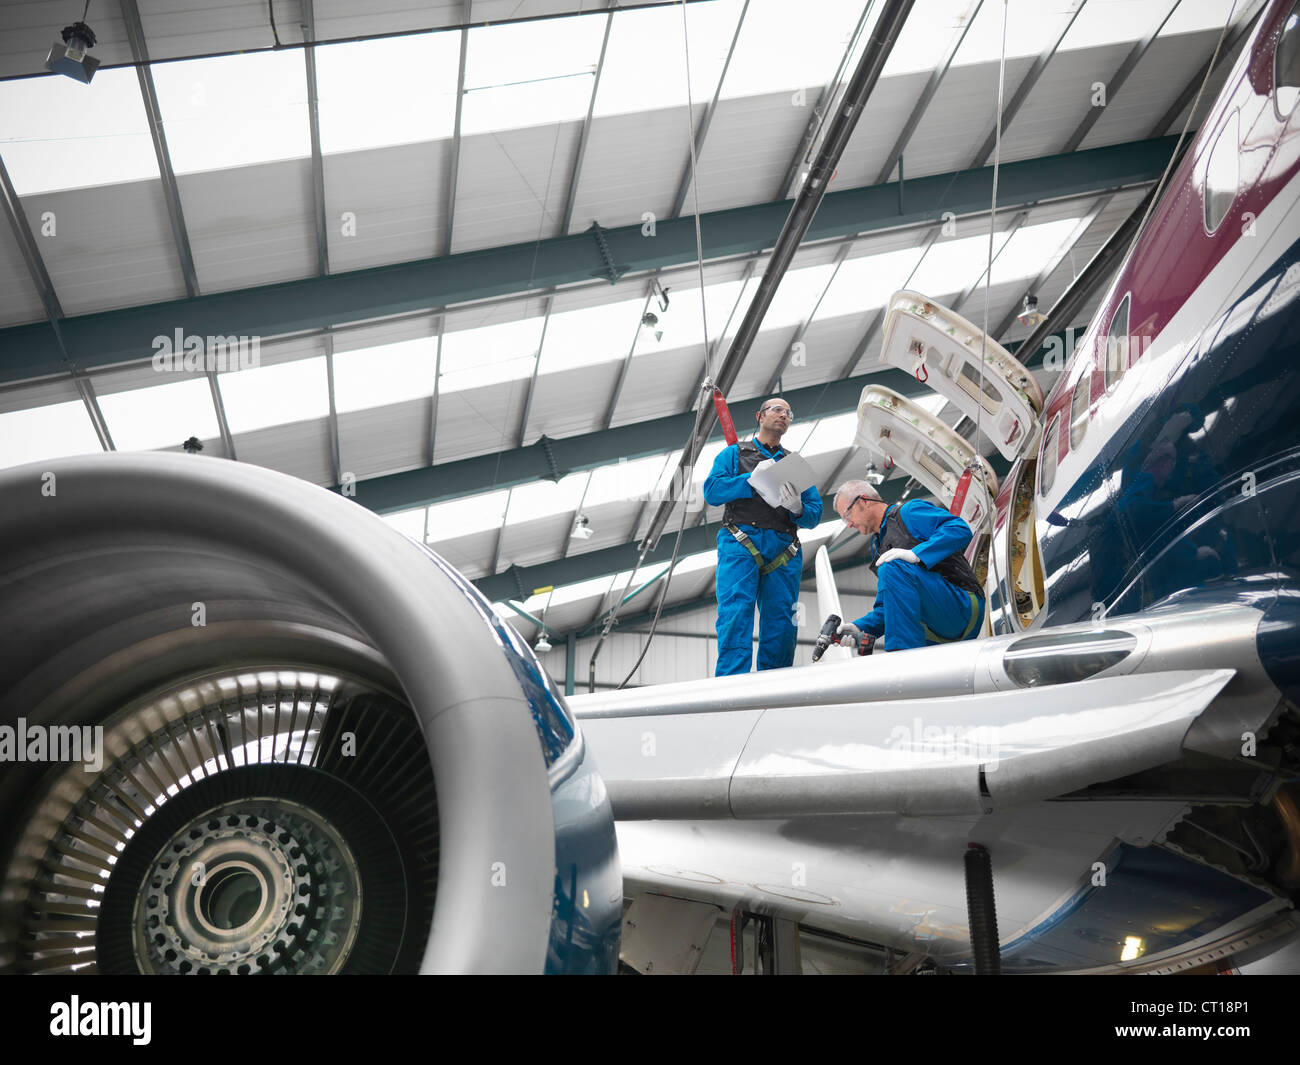 Workers examining airplane wing - Stock Image